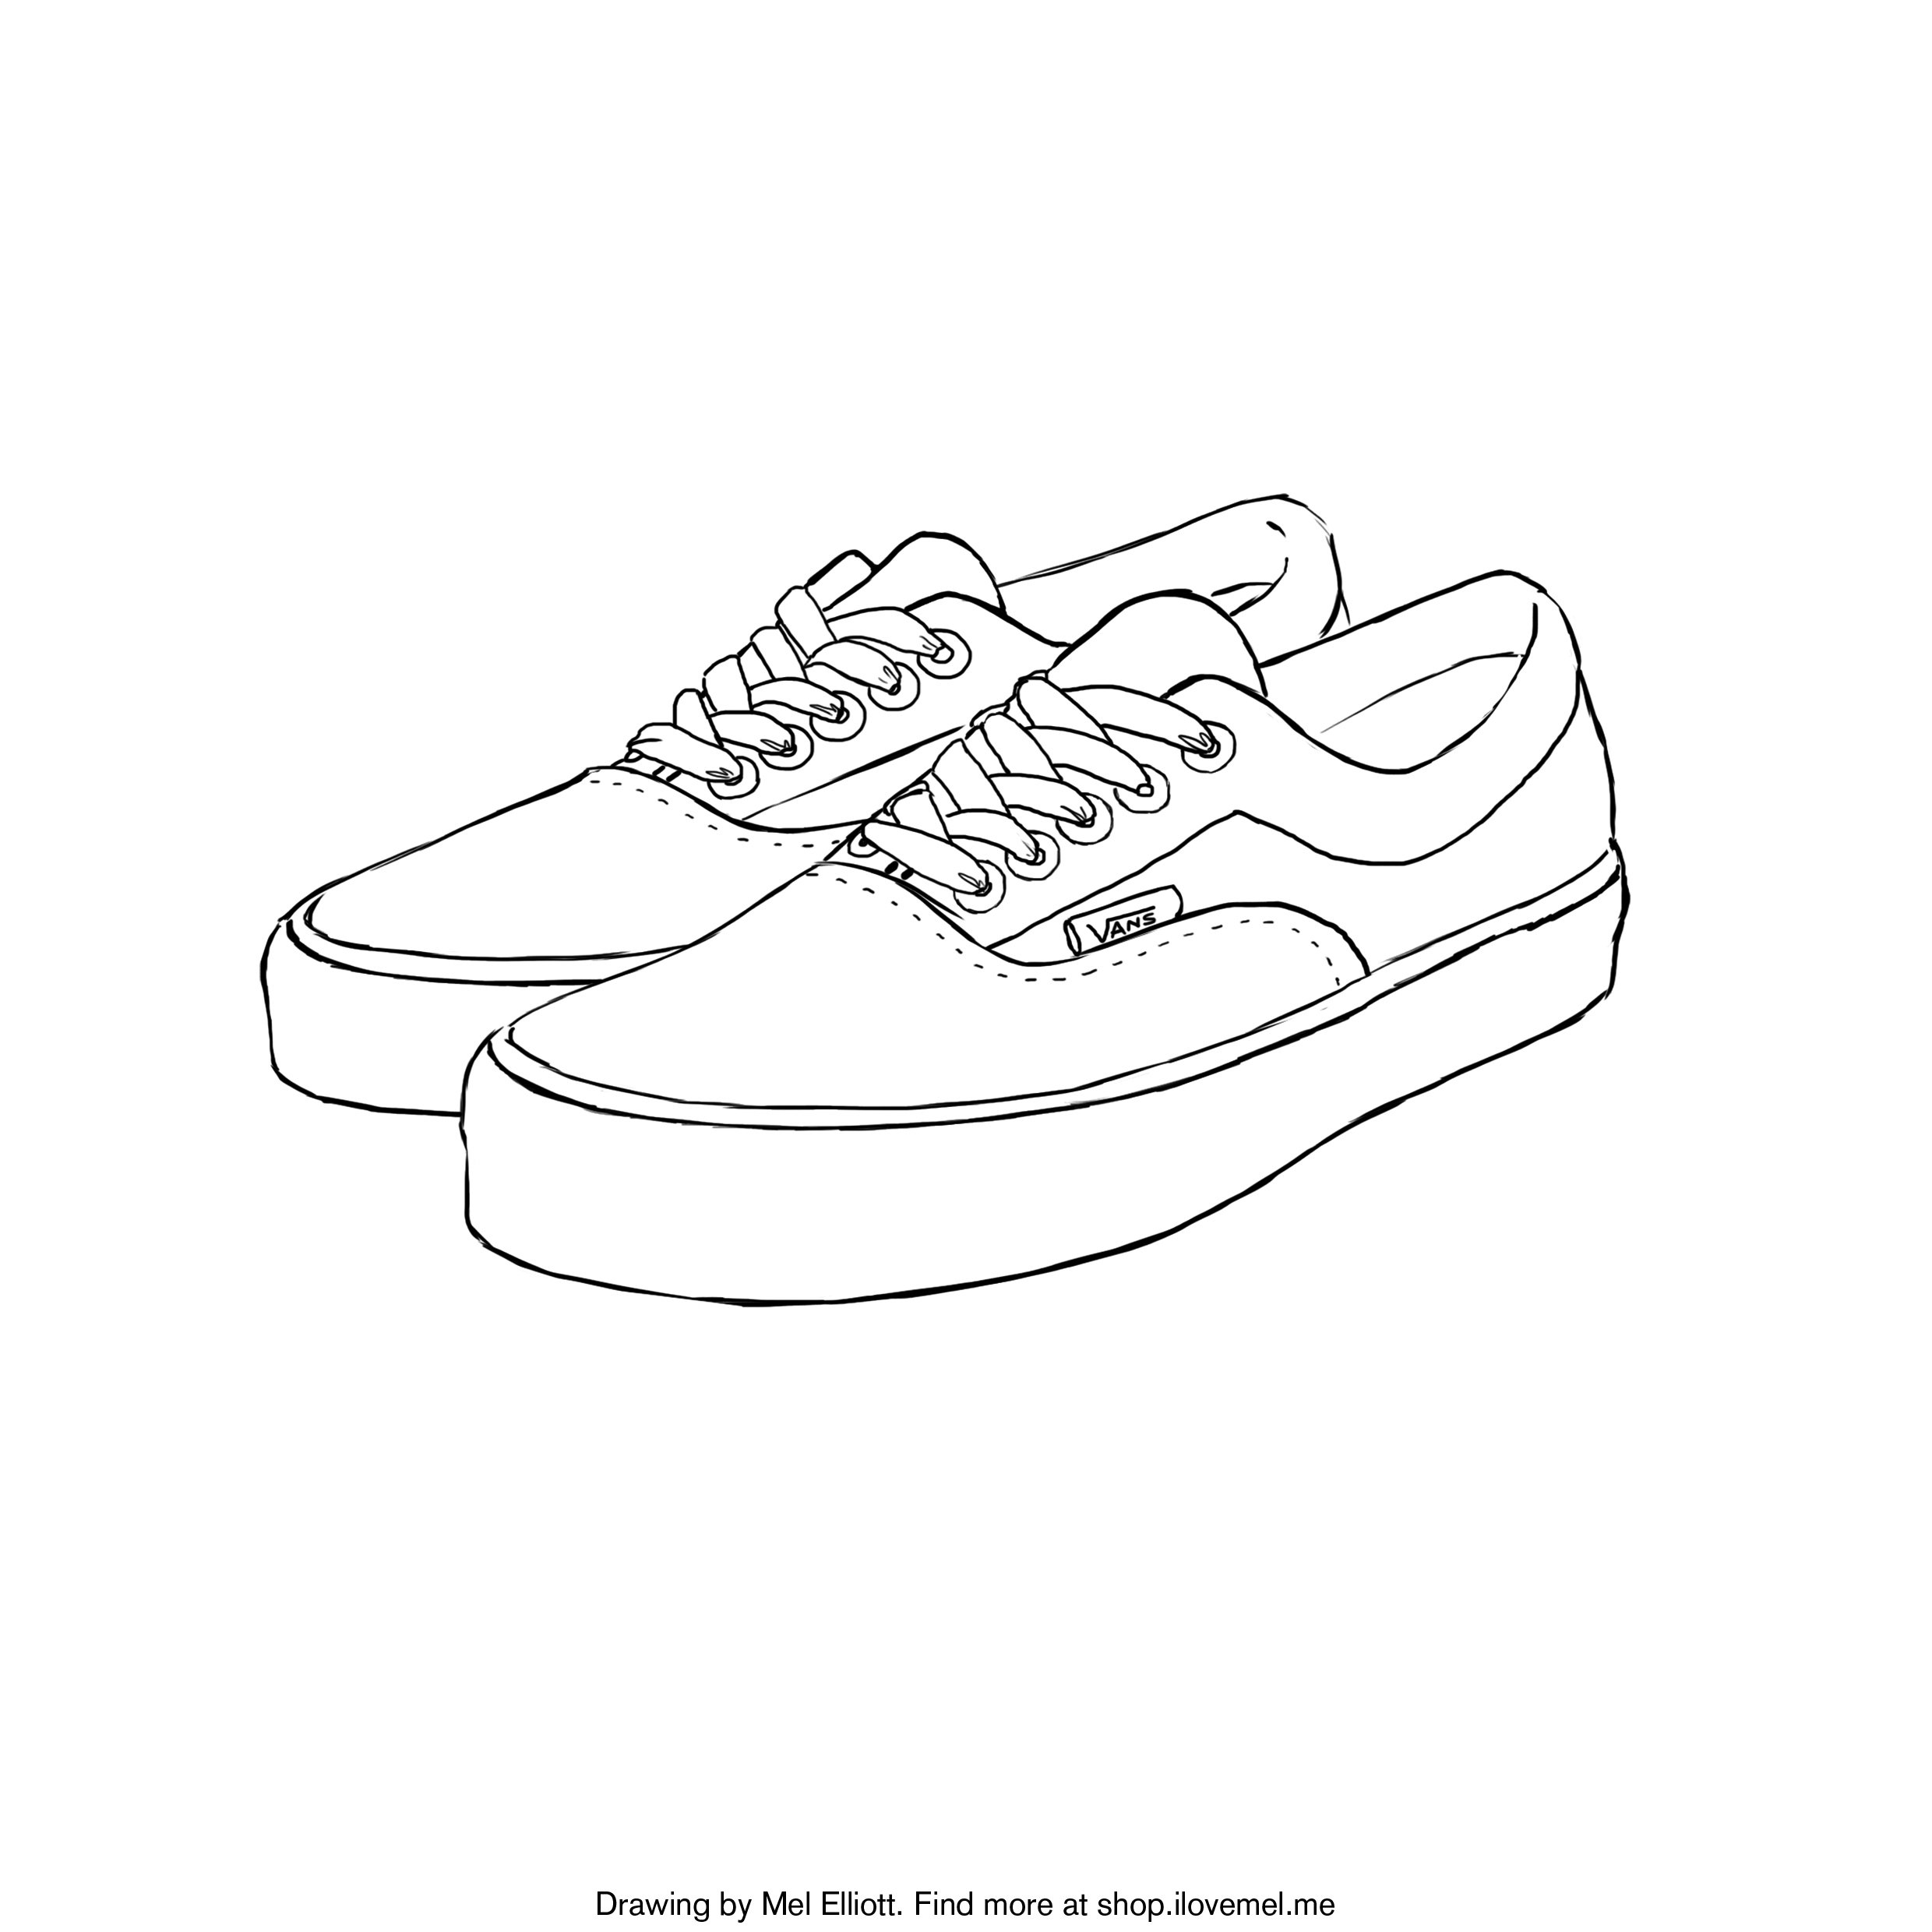 2480x2480 New Vans Skate Coloring Pages Design Free Coloring Pages